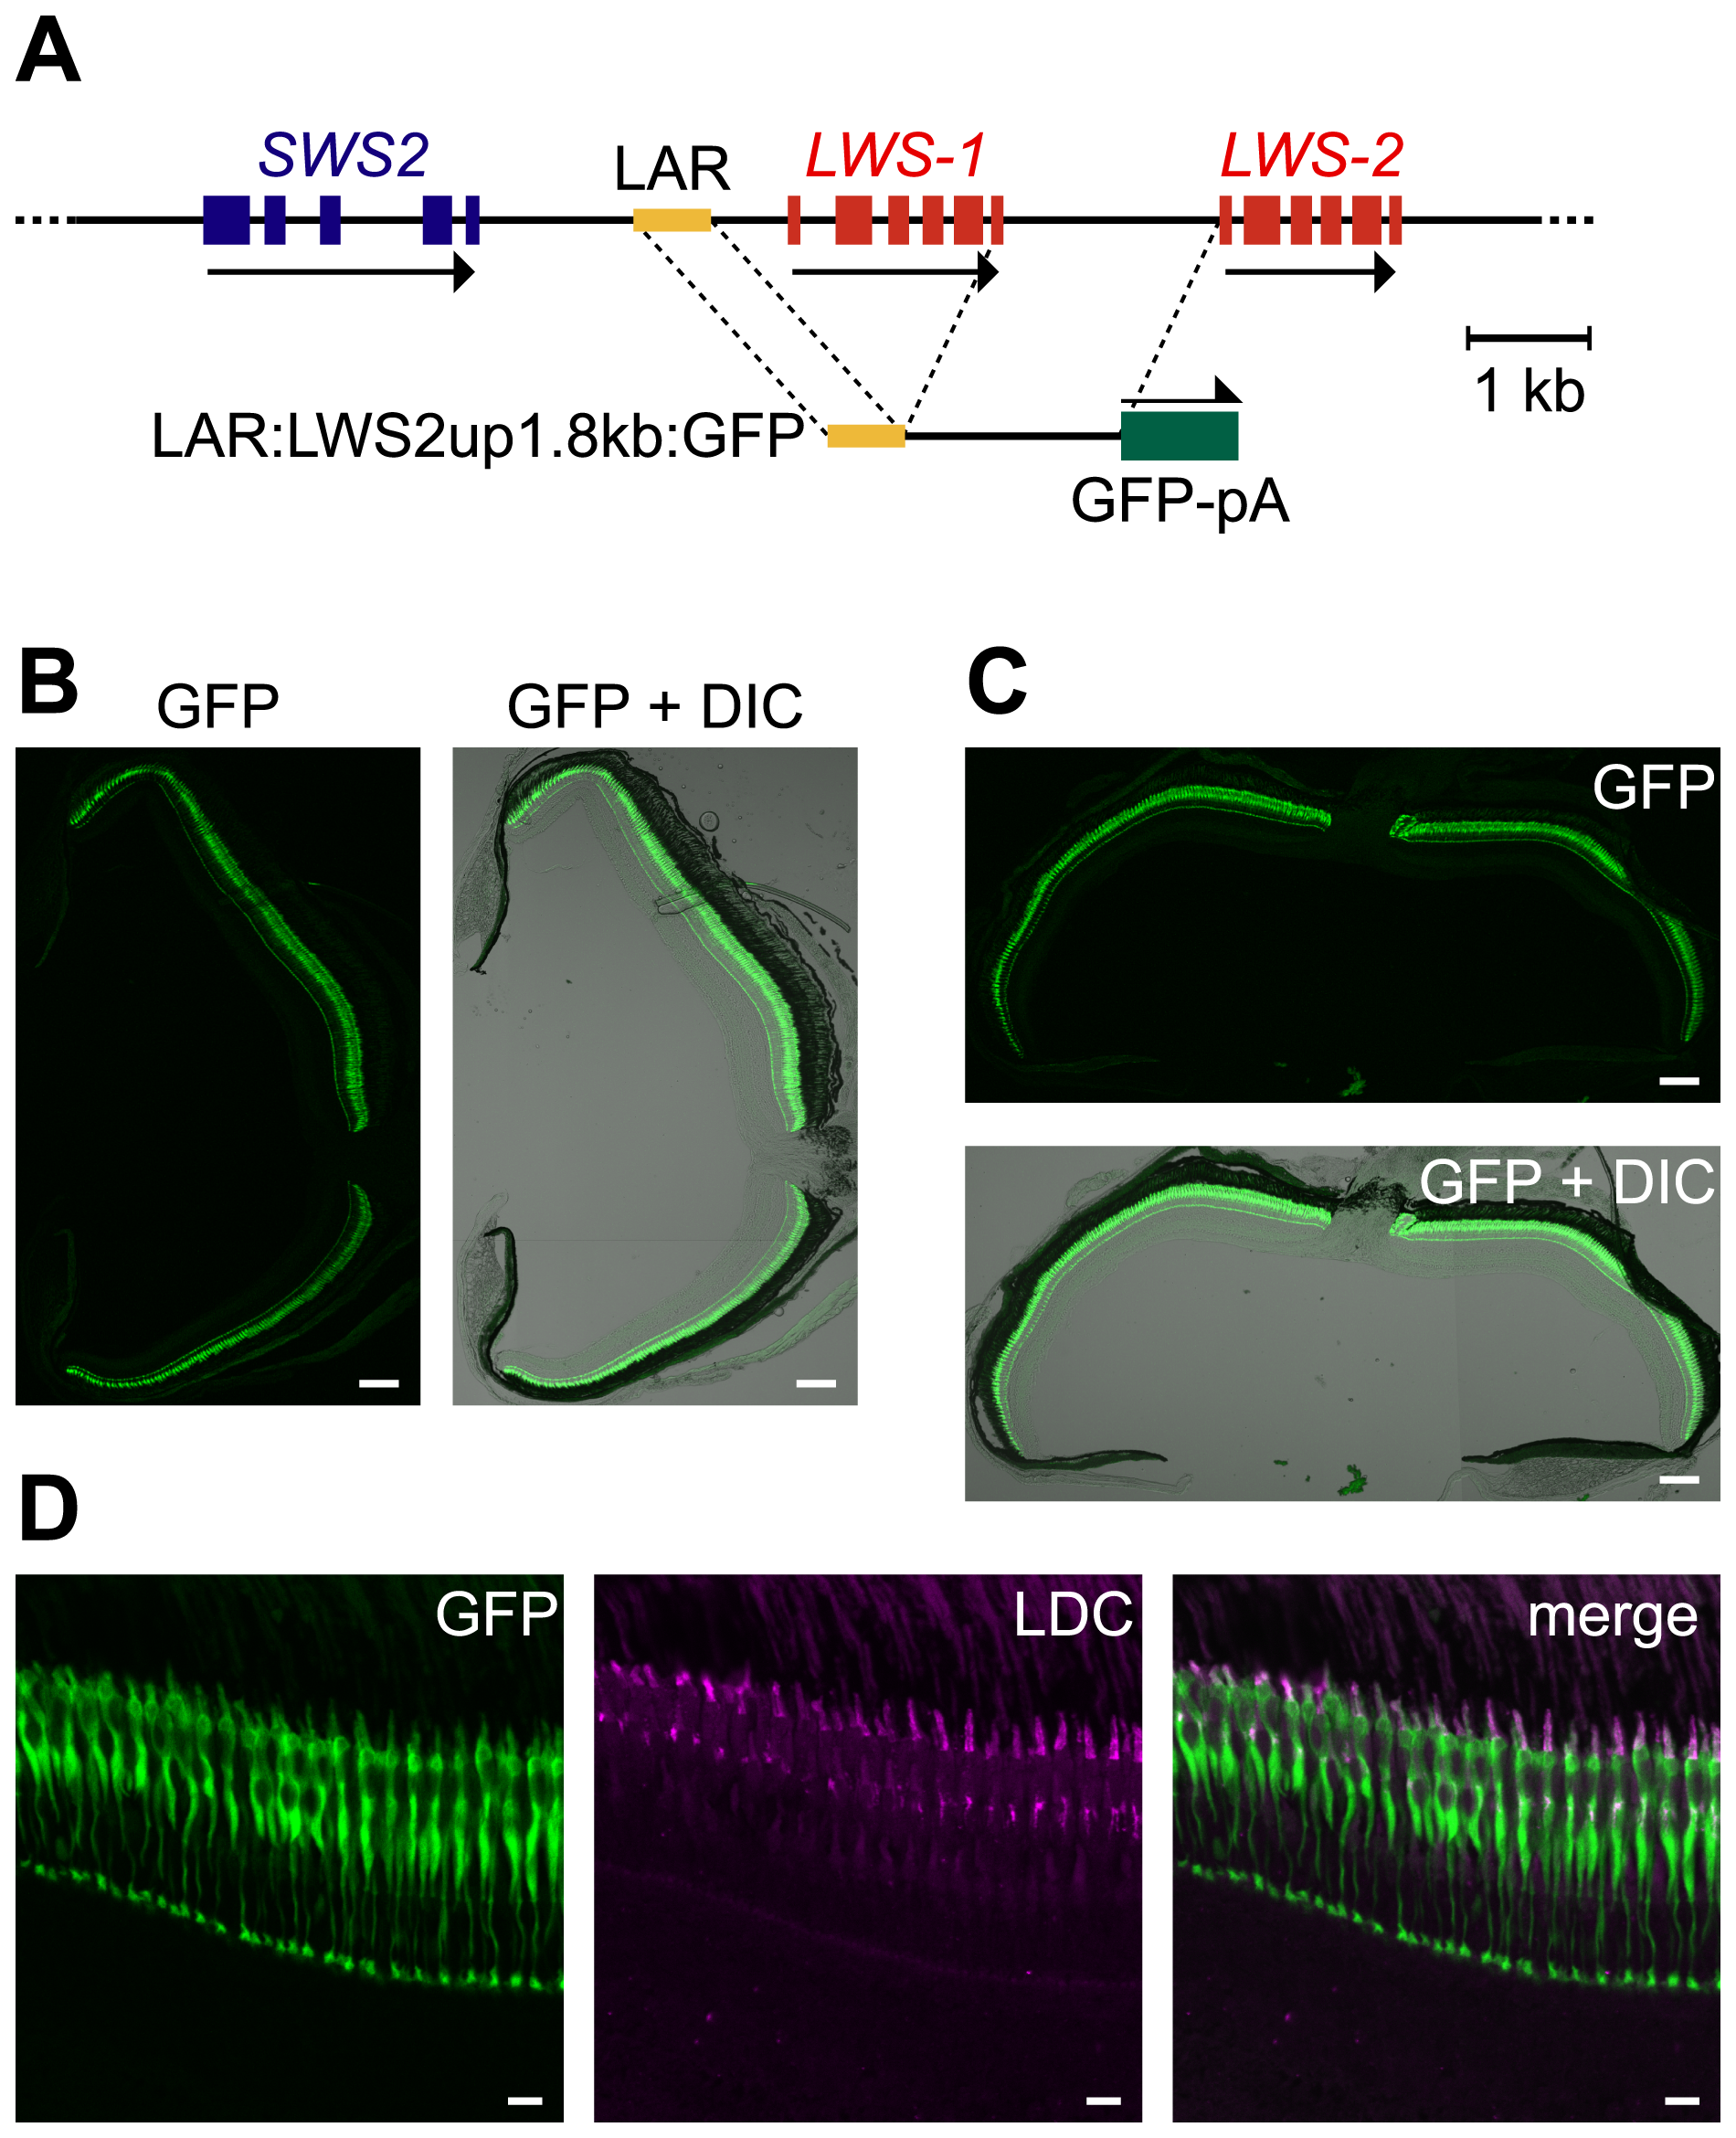 LDC–specific expression of GFP in the entire retina by LAR:LWS2up1.8kb:GFP.